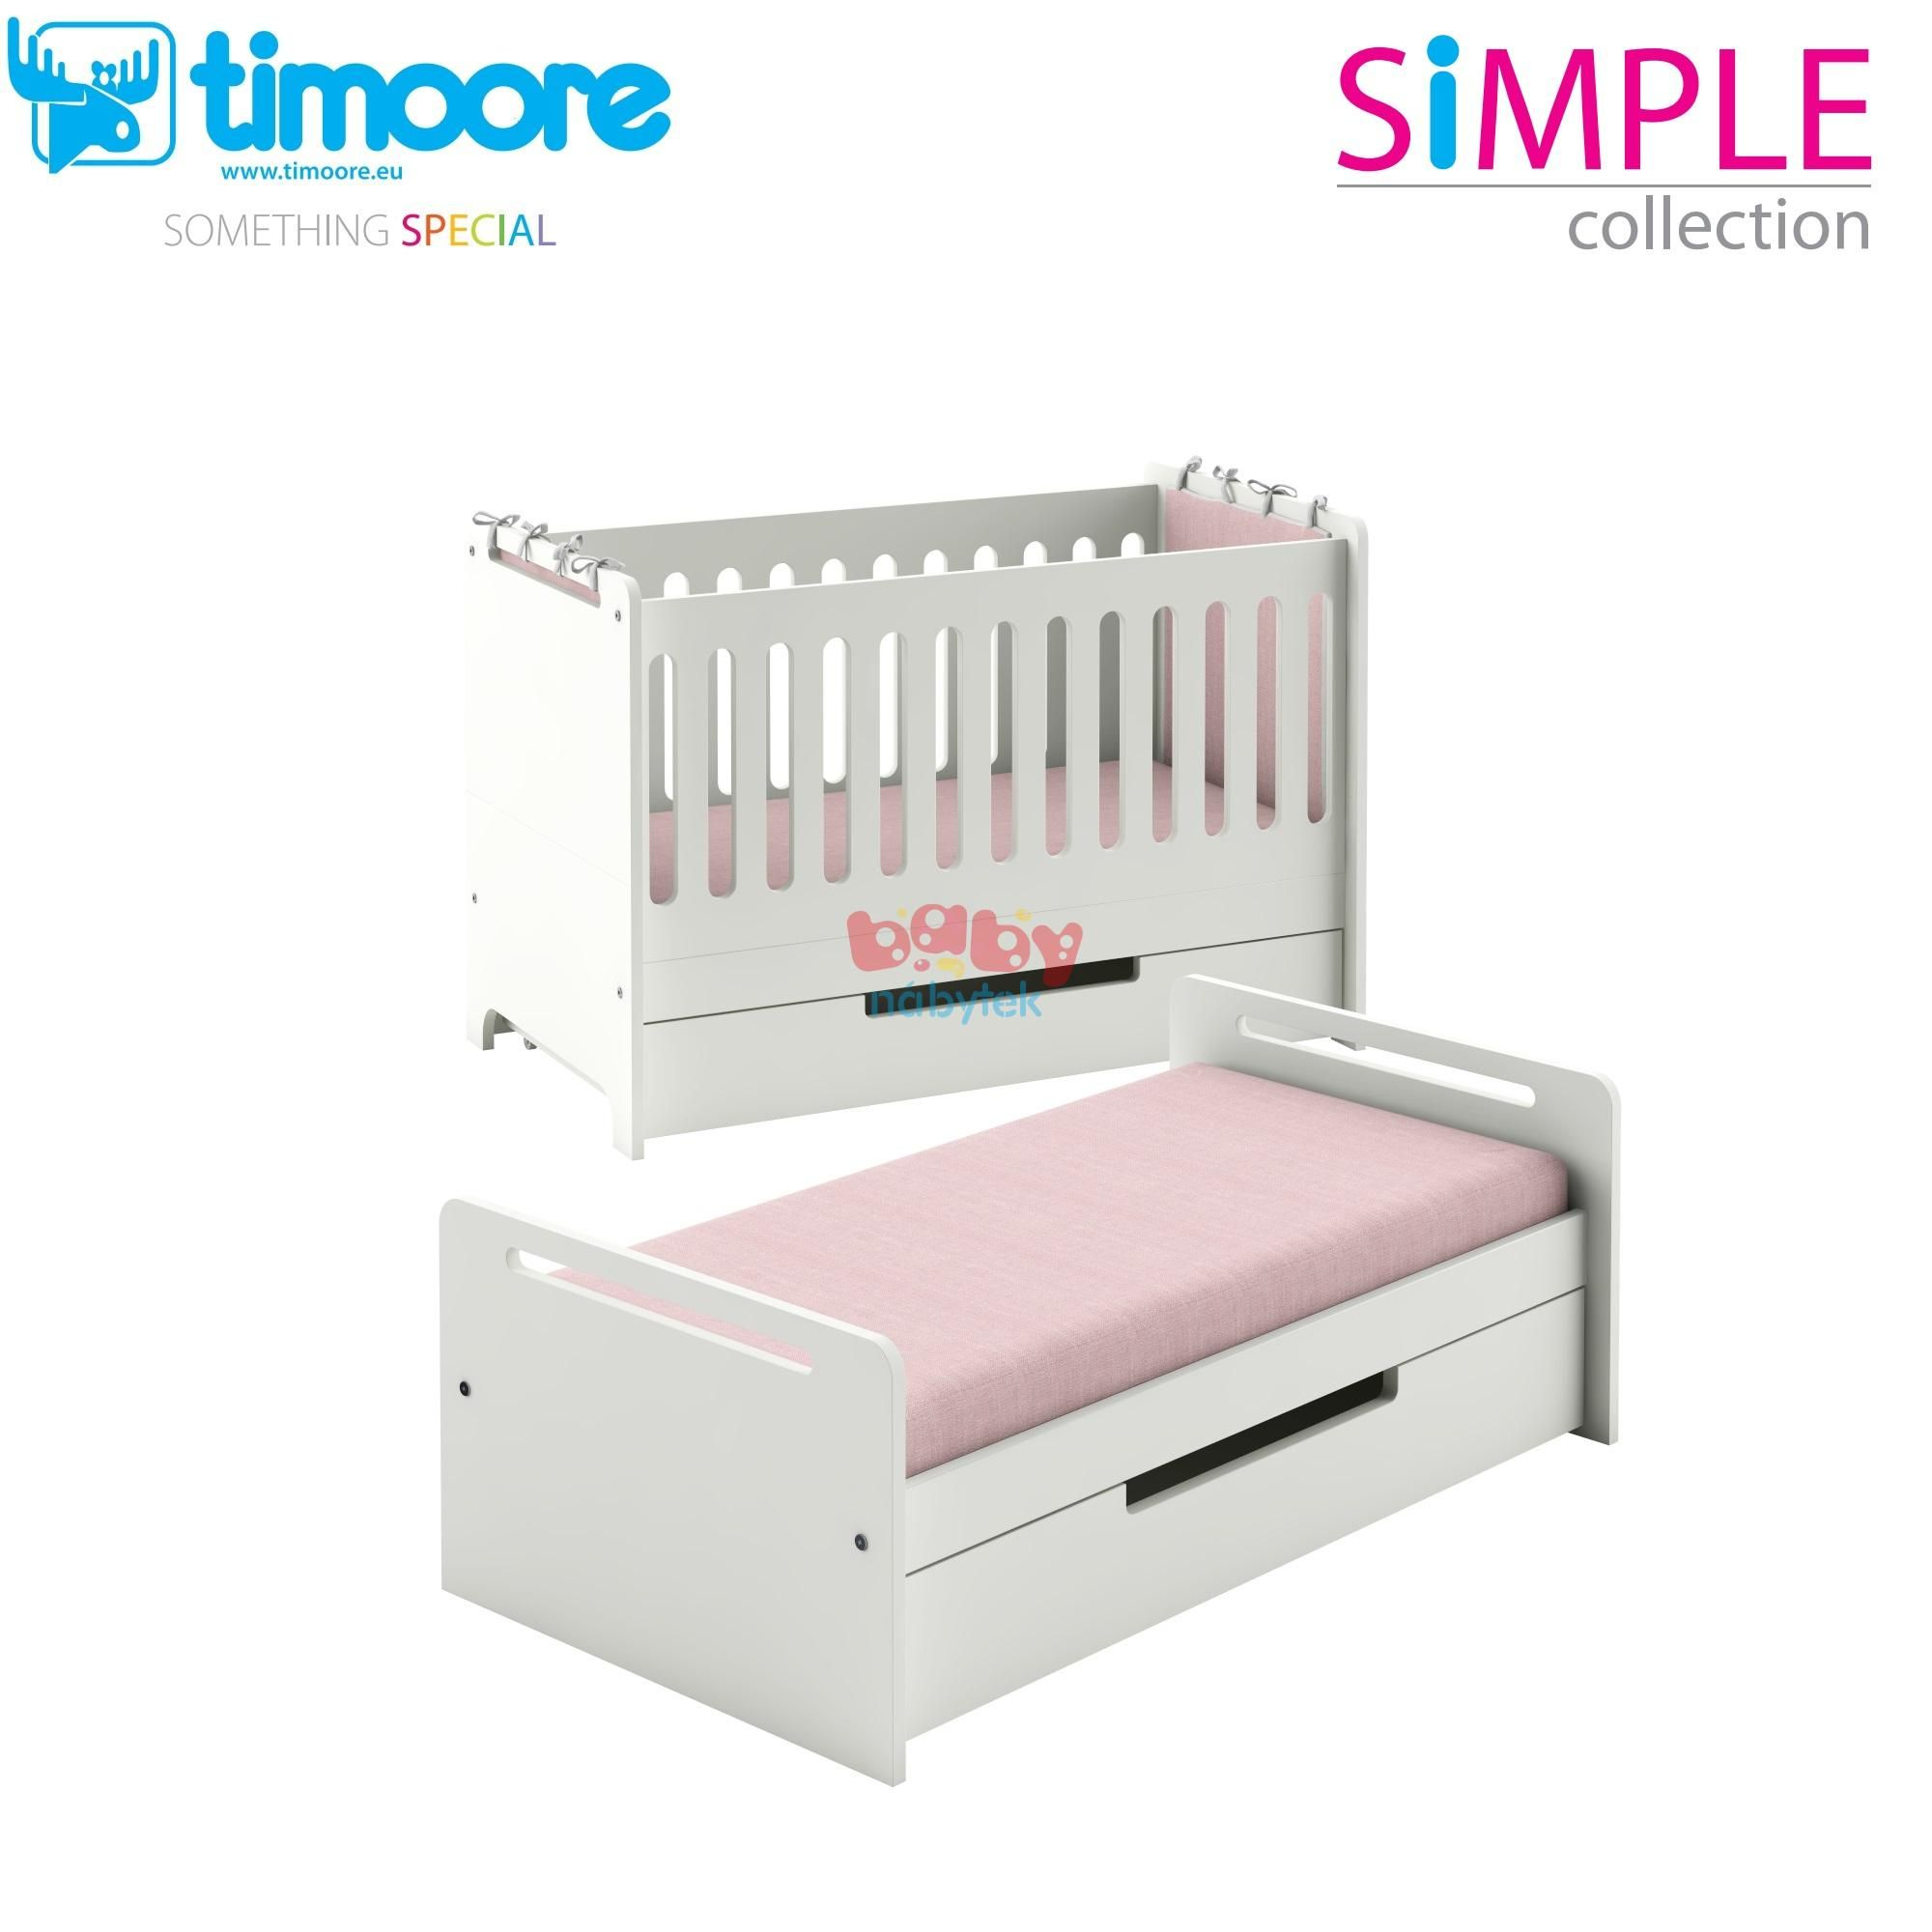 Rocking crib for sale doncaster - Post Lka Simple 140x70cm